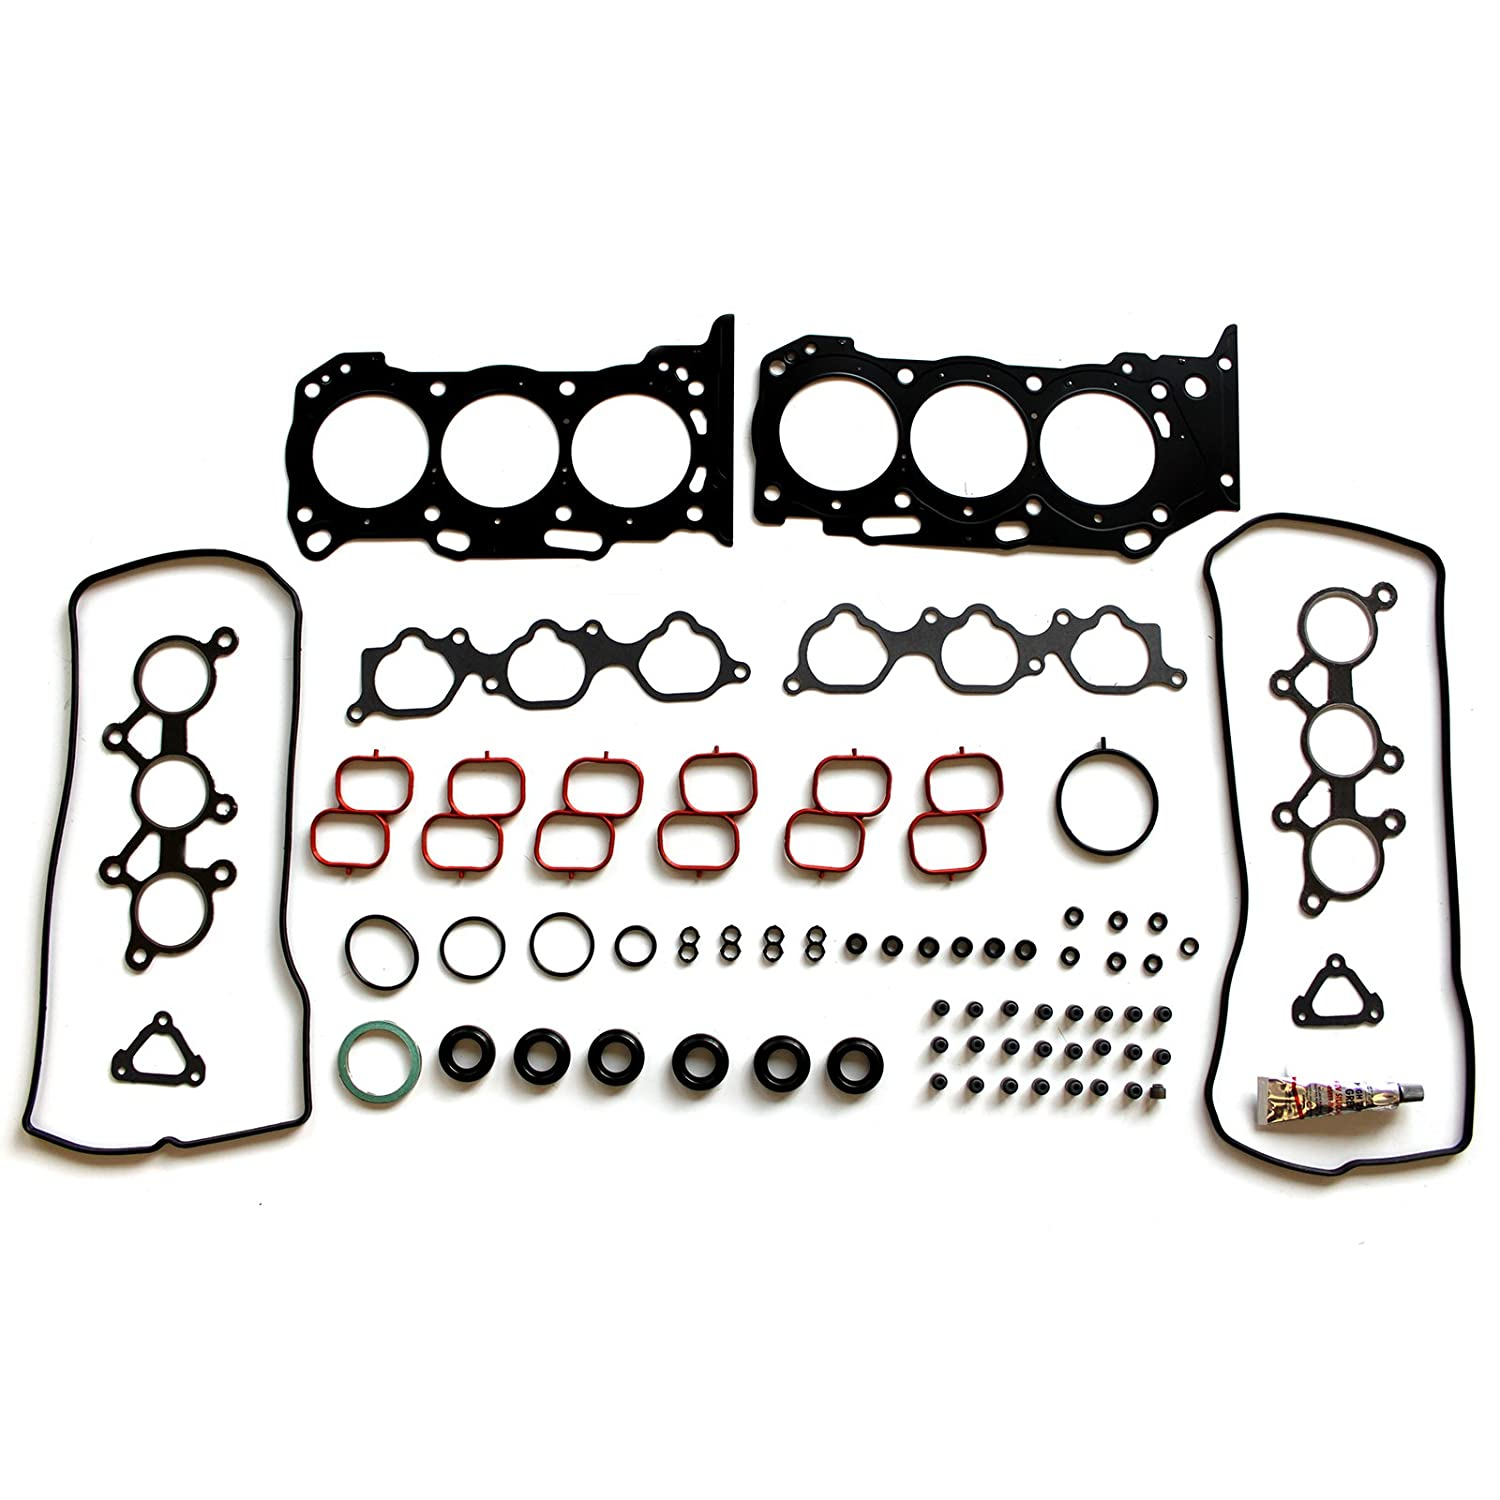 Amazon.com: ECCPP Compatible fit for Head Gasket Kit for 2007-2015 Lexus  ES350 RX350 Toyota Camry Toyota Sienna 3.5L V6 Engine Valve Covers Gaskets  Kits: ...